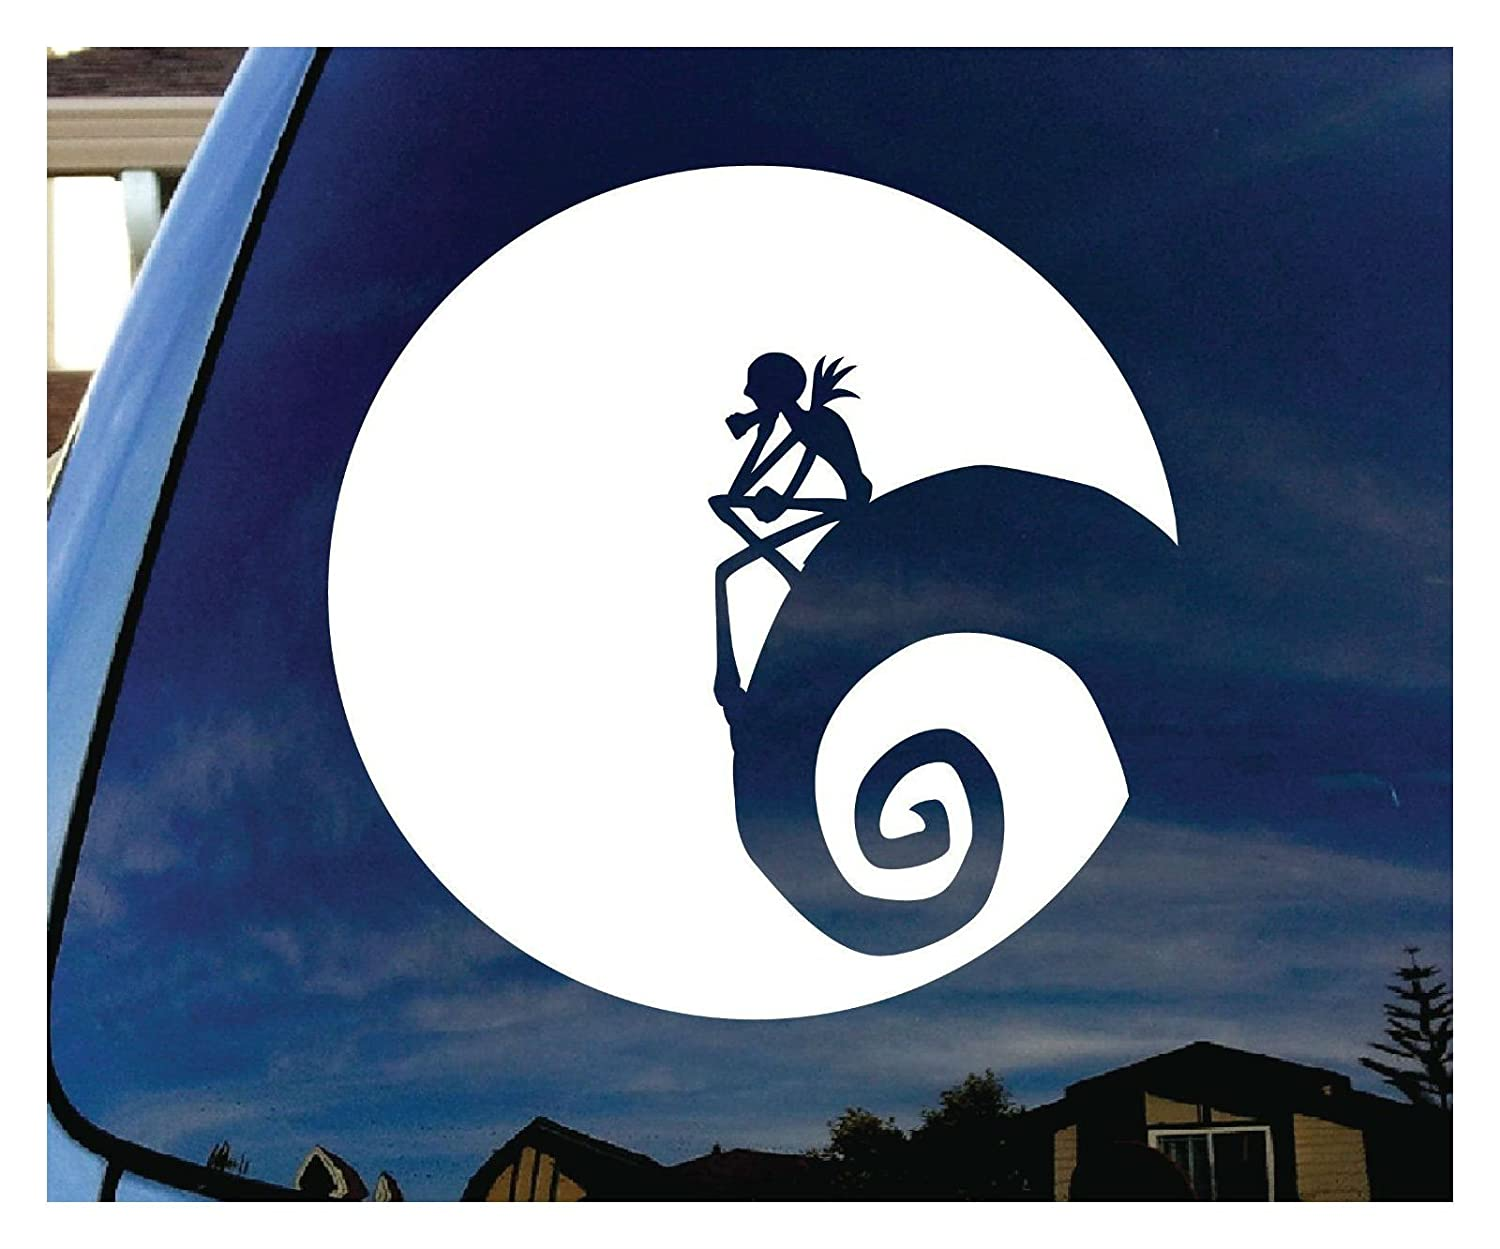 Amazoncom Jack Nightmare Before Christmas Moon Car Window Vinyl - Window decals amazon